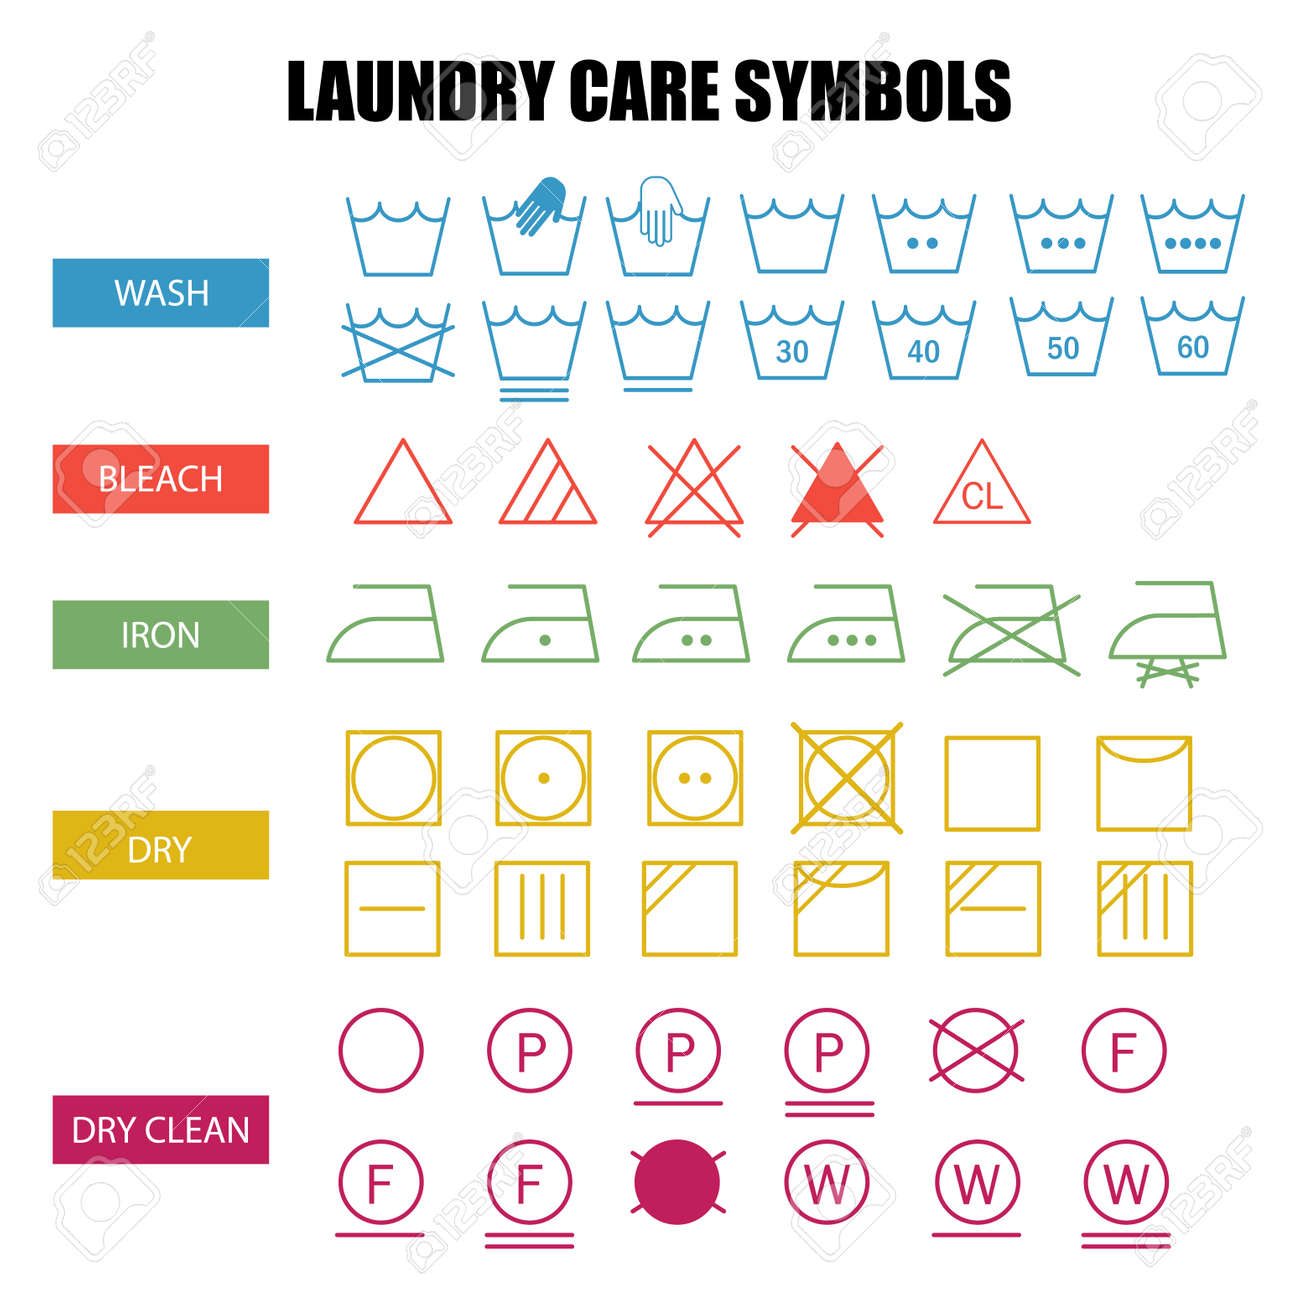 Laundry care symbols set wash bleach iron dry and dry clean laundry care symbols set wash bleach iron dry and dry clean symbols biocorpaavc Image collections